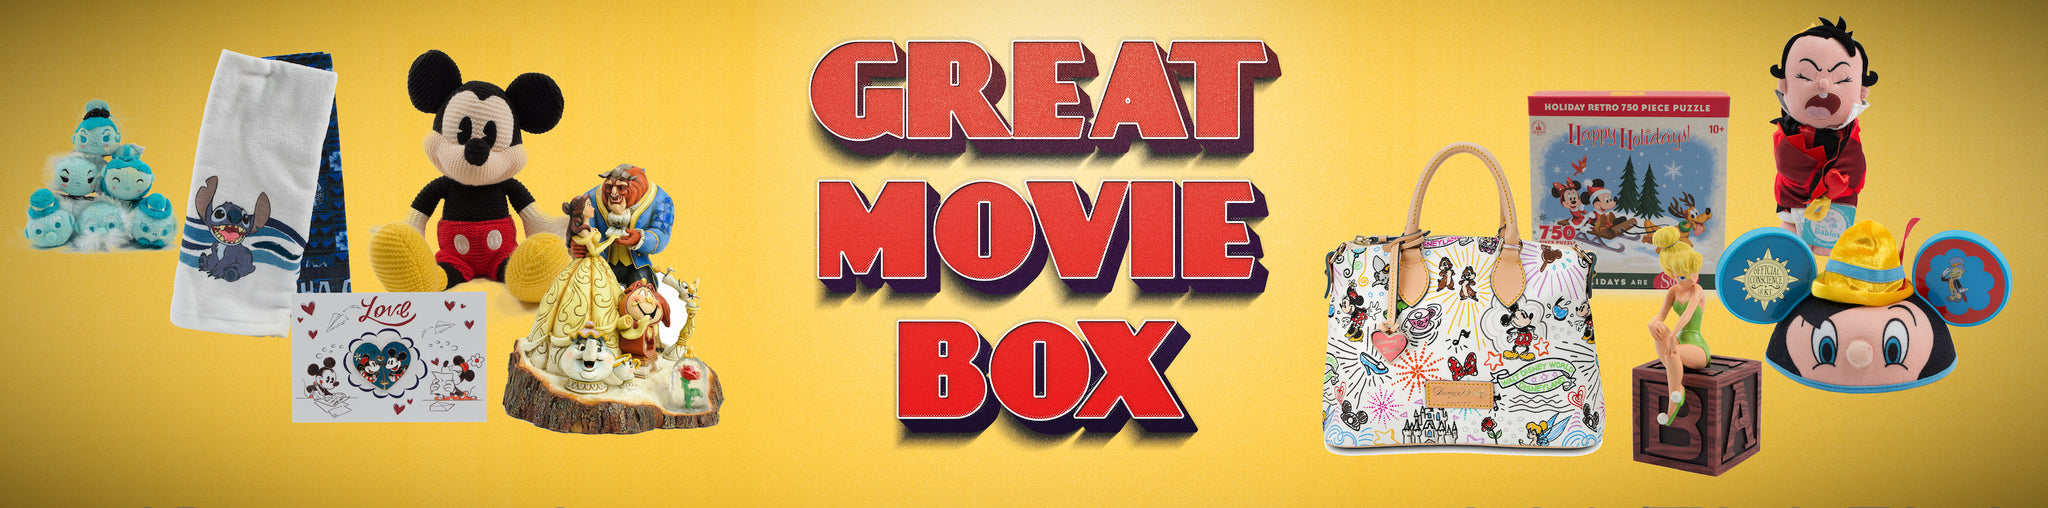 Great Movie Box! Extra Large Box